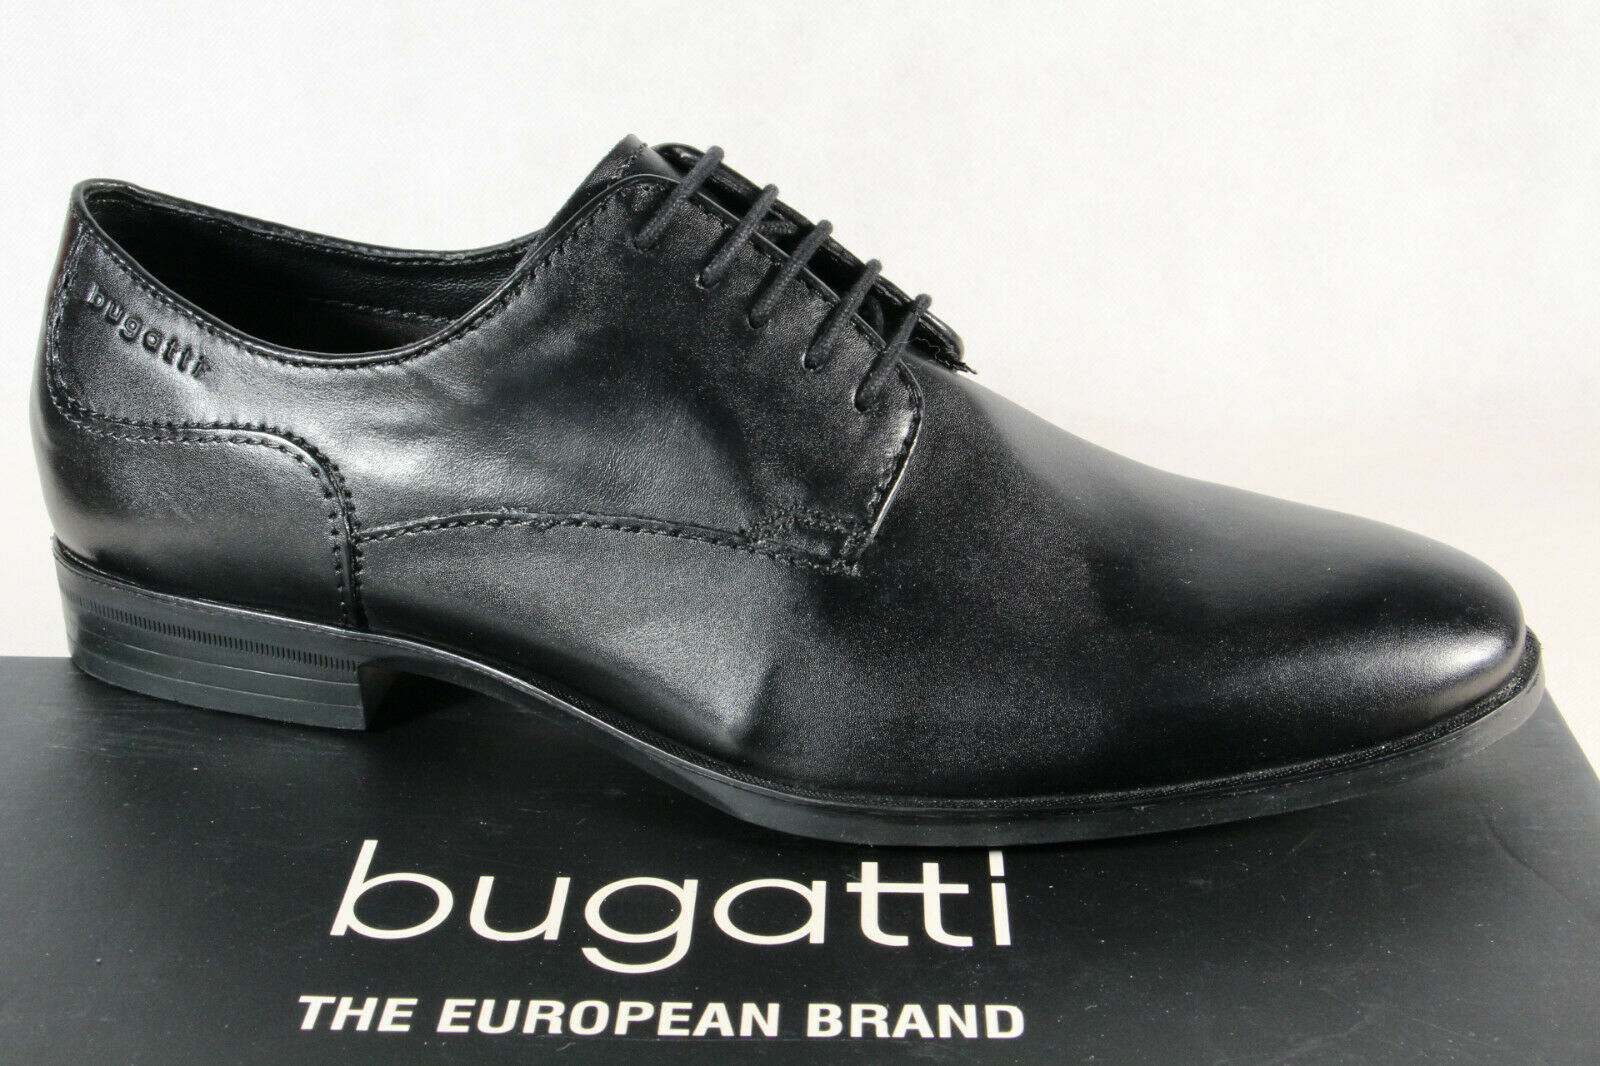 Bugatti Men's Lace-Up shoes Lace-Up Loafers Sneaker Black 44601 New